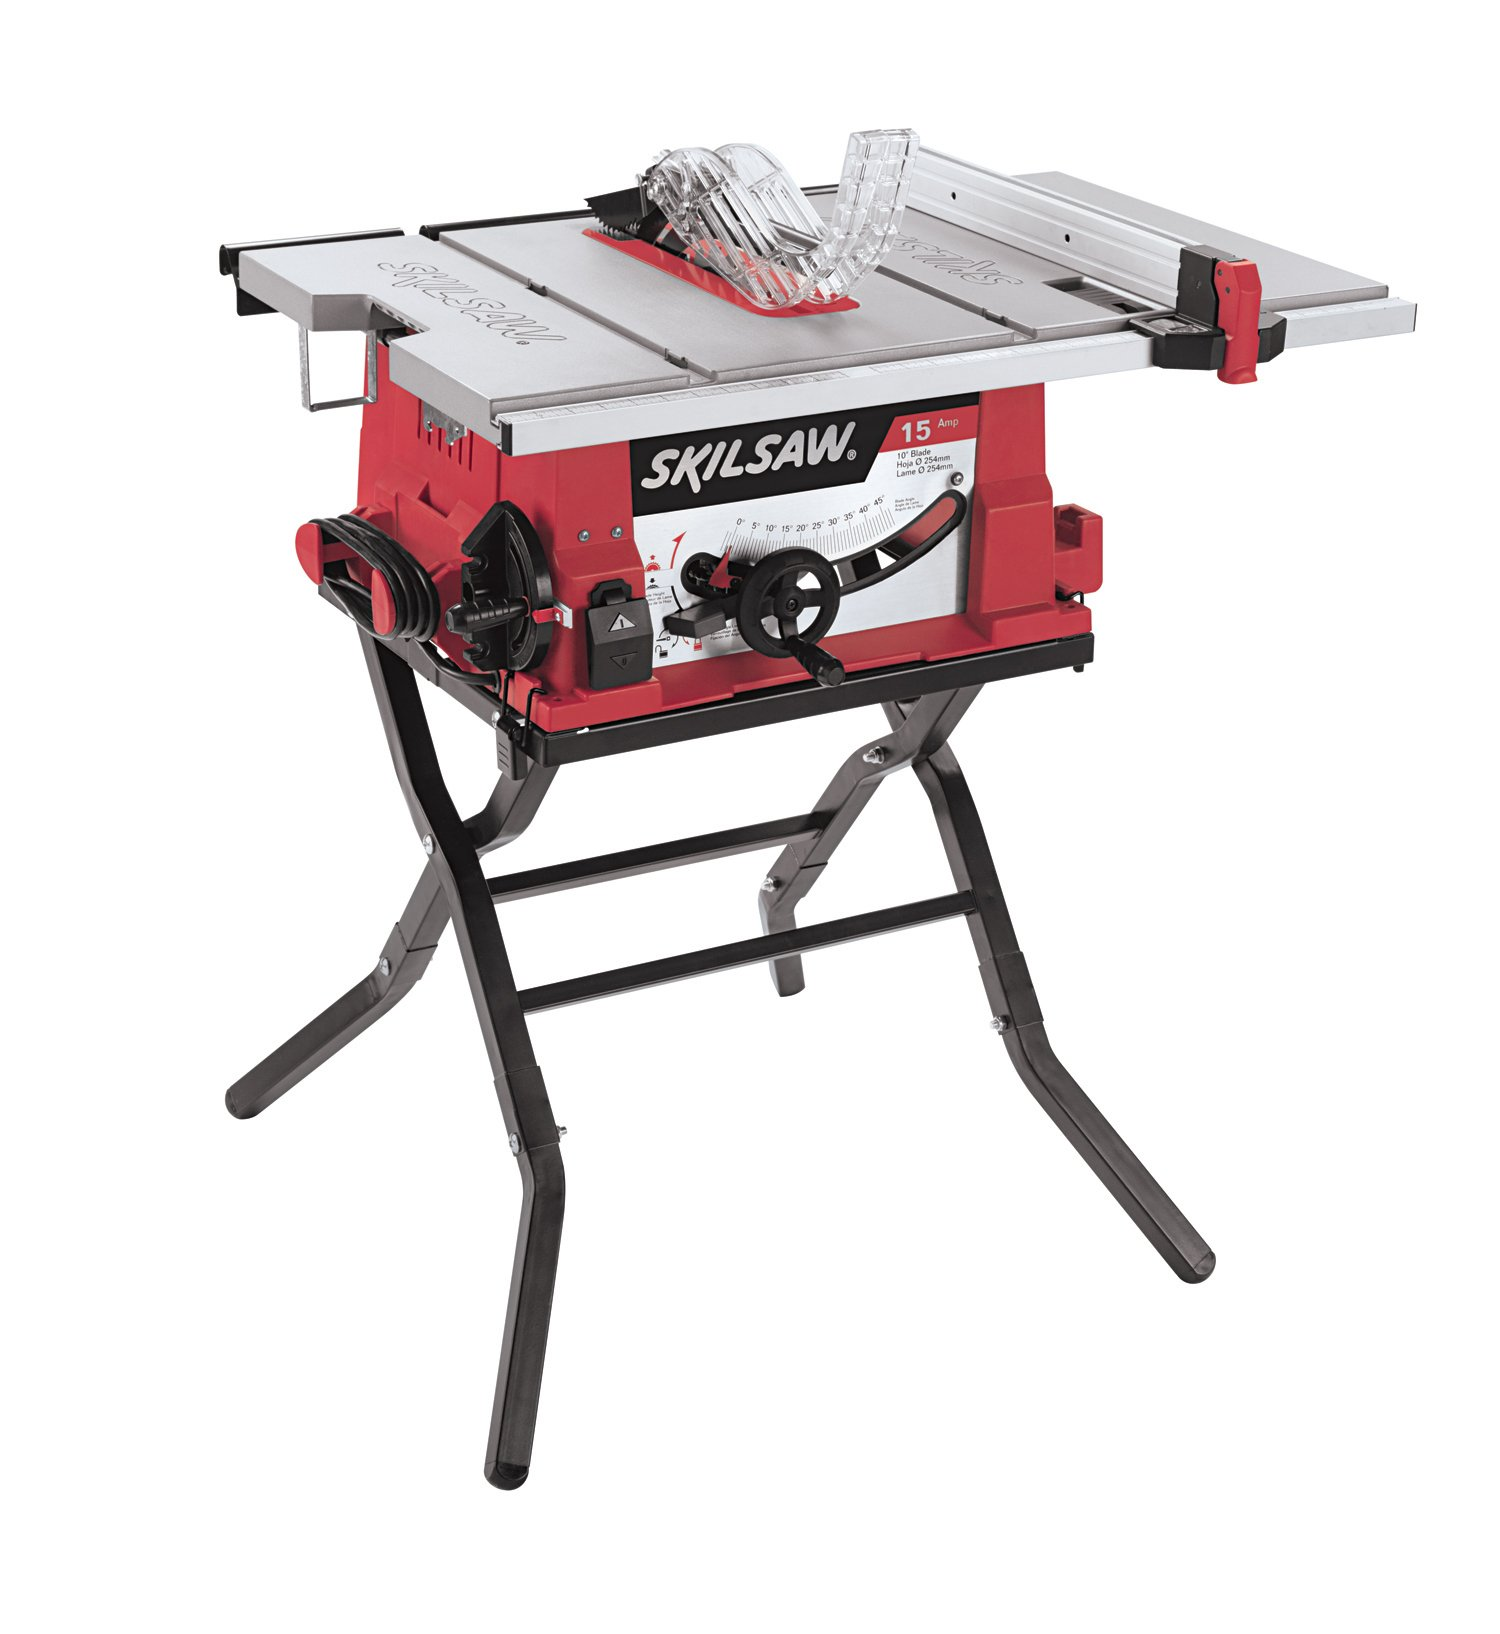 SKIL 3410-02 10-Inch Table Saw with Folding Stand by SKILSAW